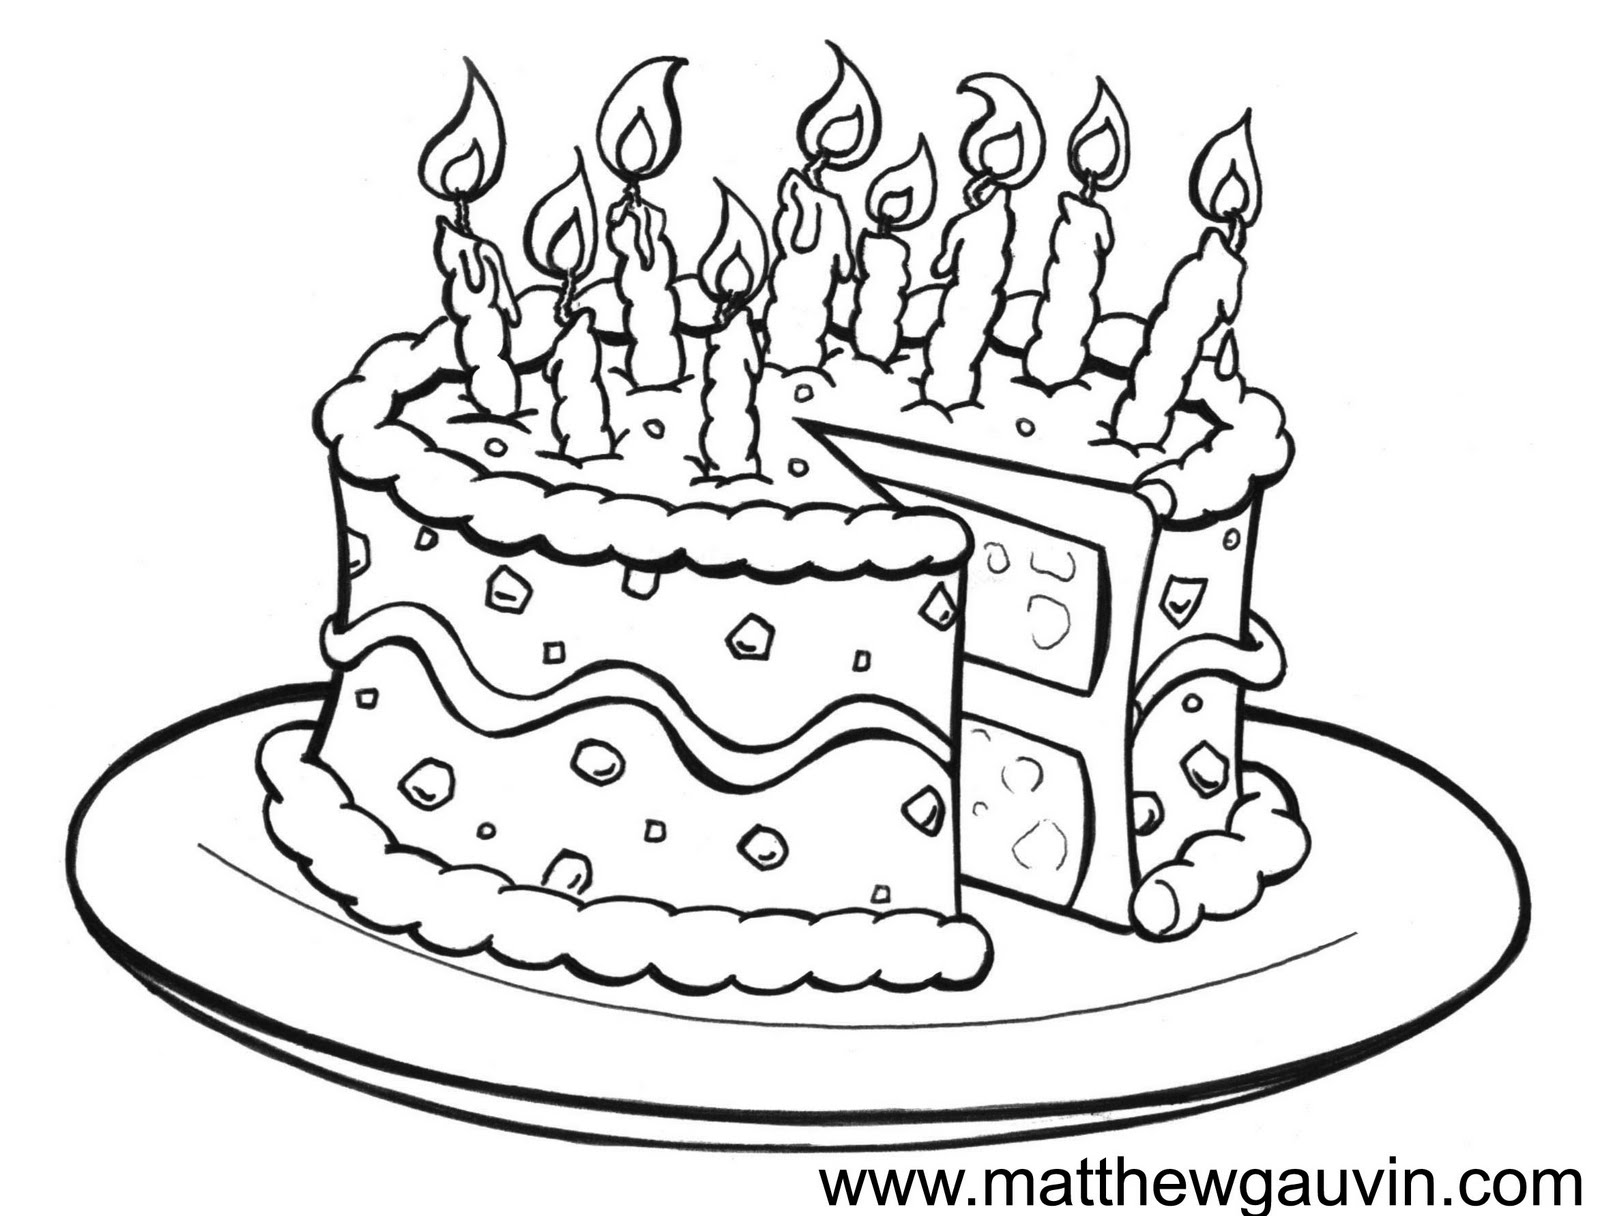 birthday cake drawing for kids ; drawn-wedding-cake-pencil-drawing-8